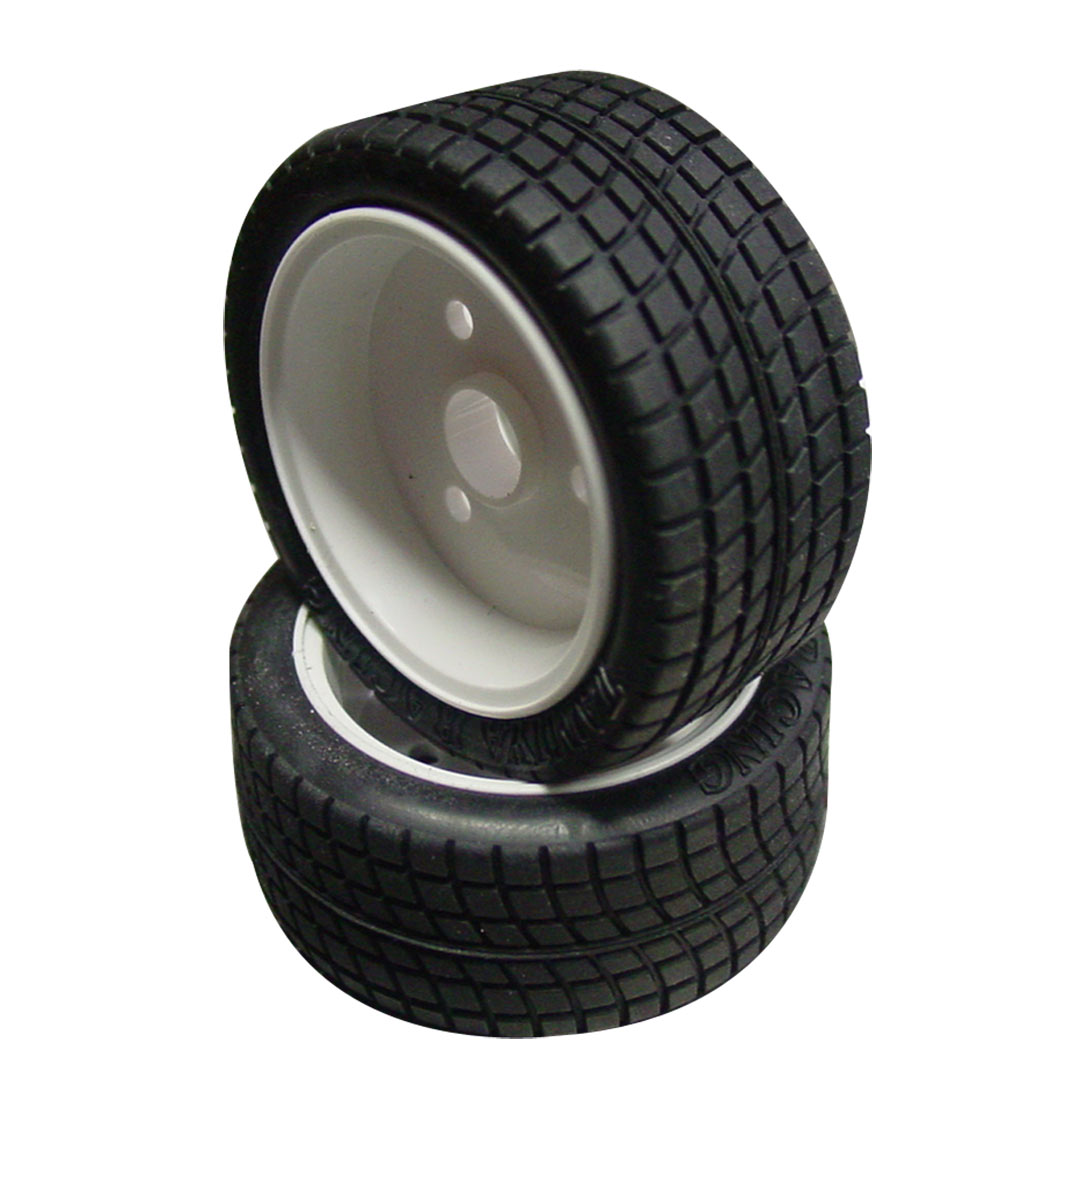 56mm Sports Tire/Wheel Set - Tamiya 70111